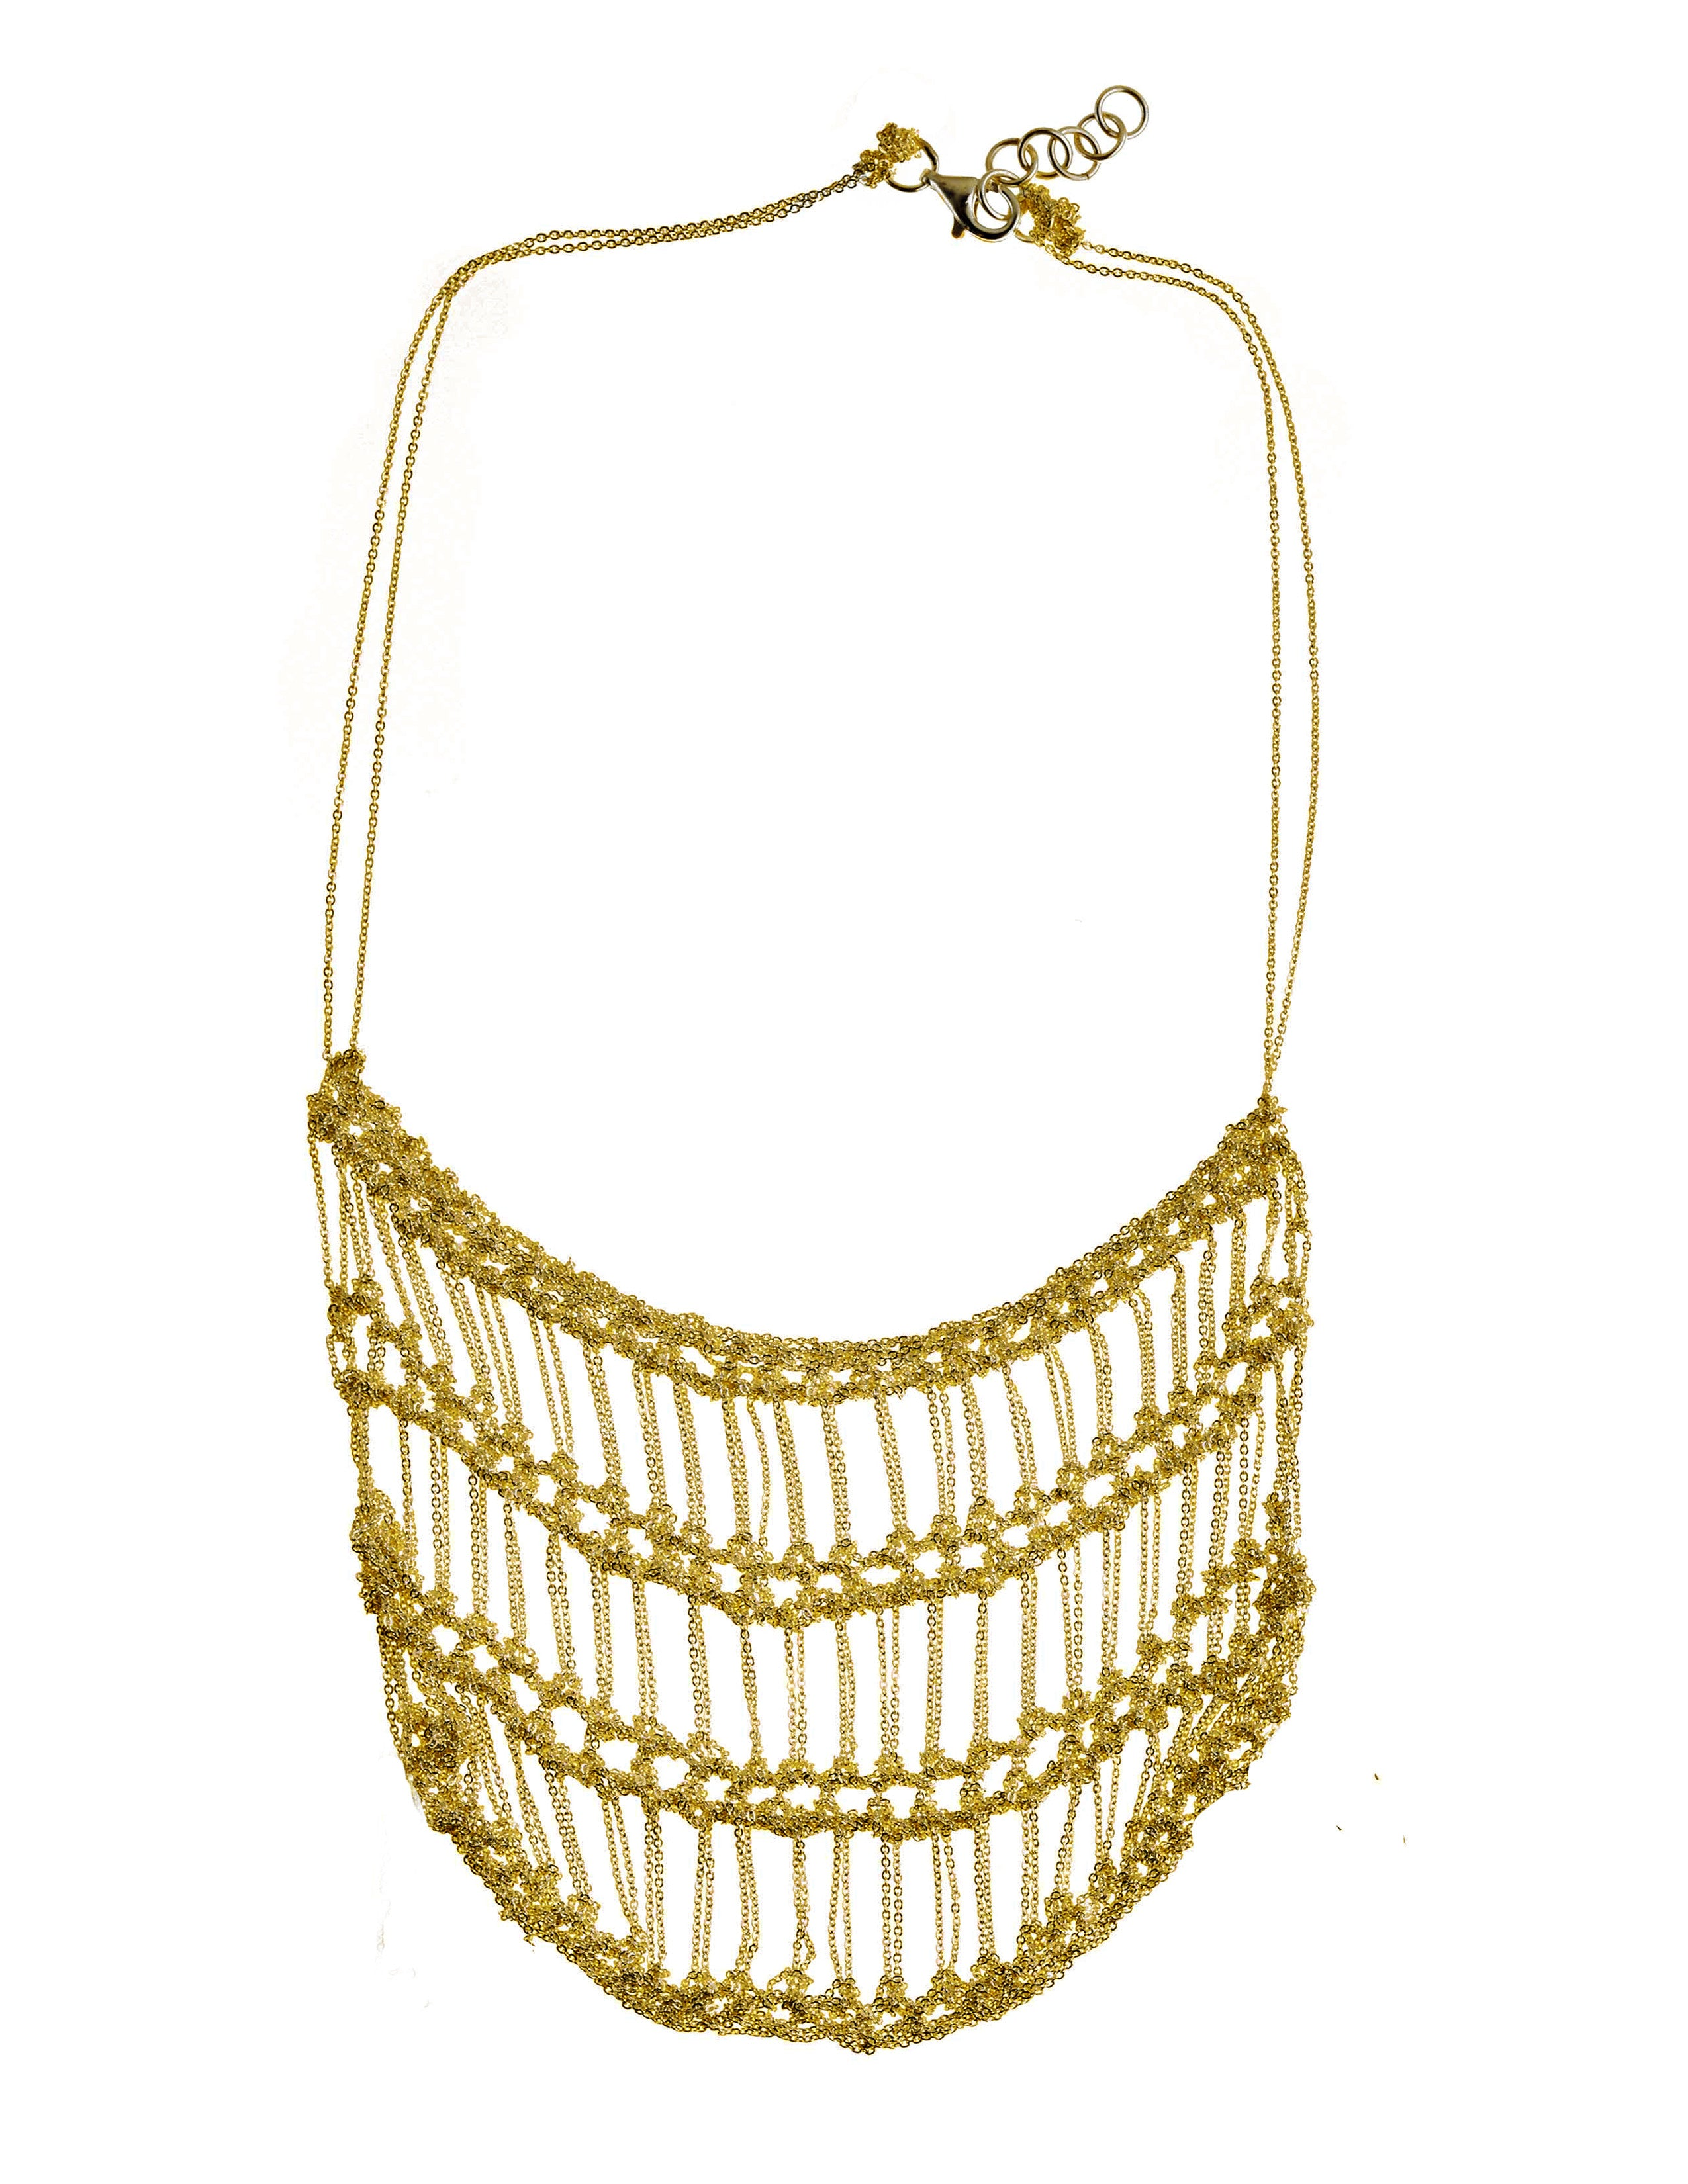 Frame Necklace in Gold